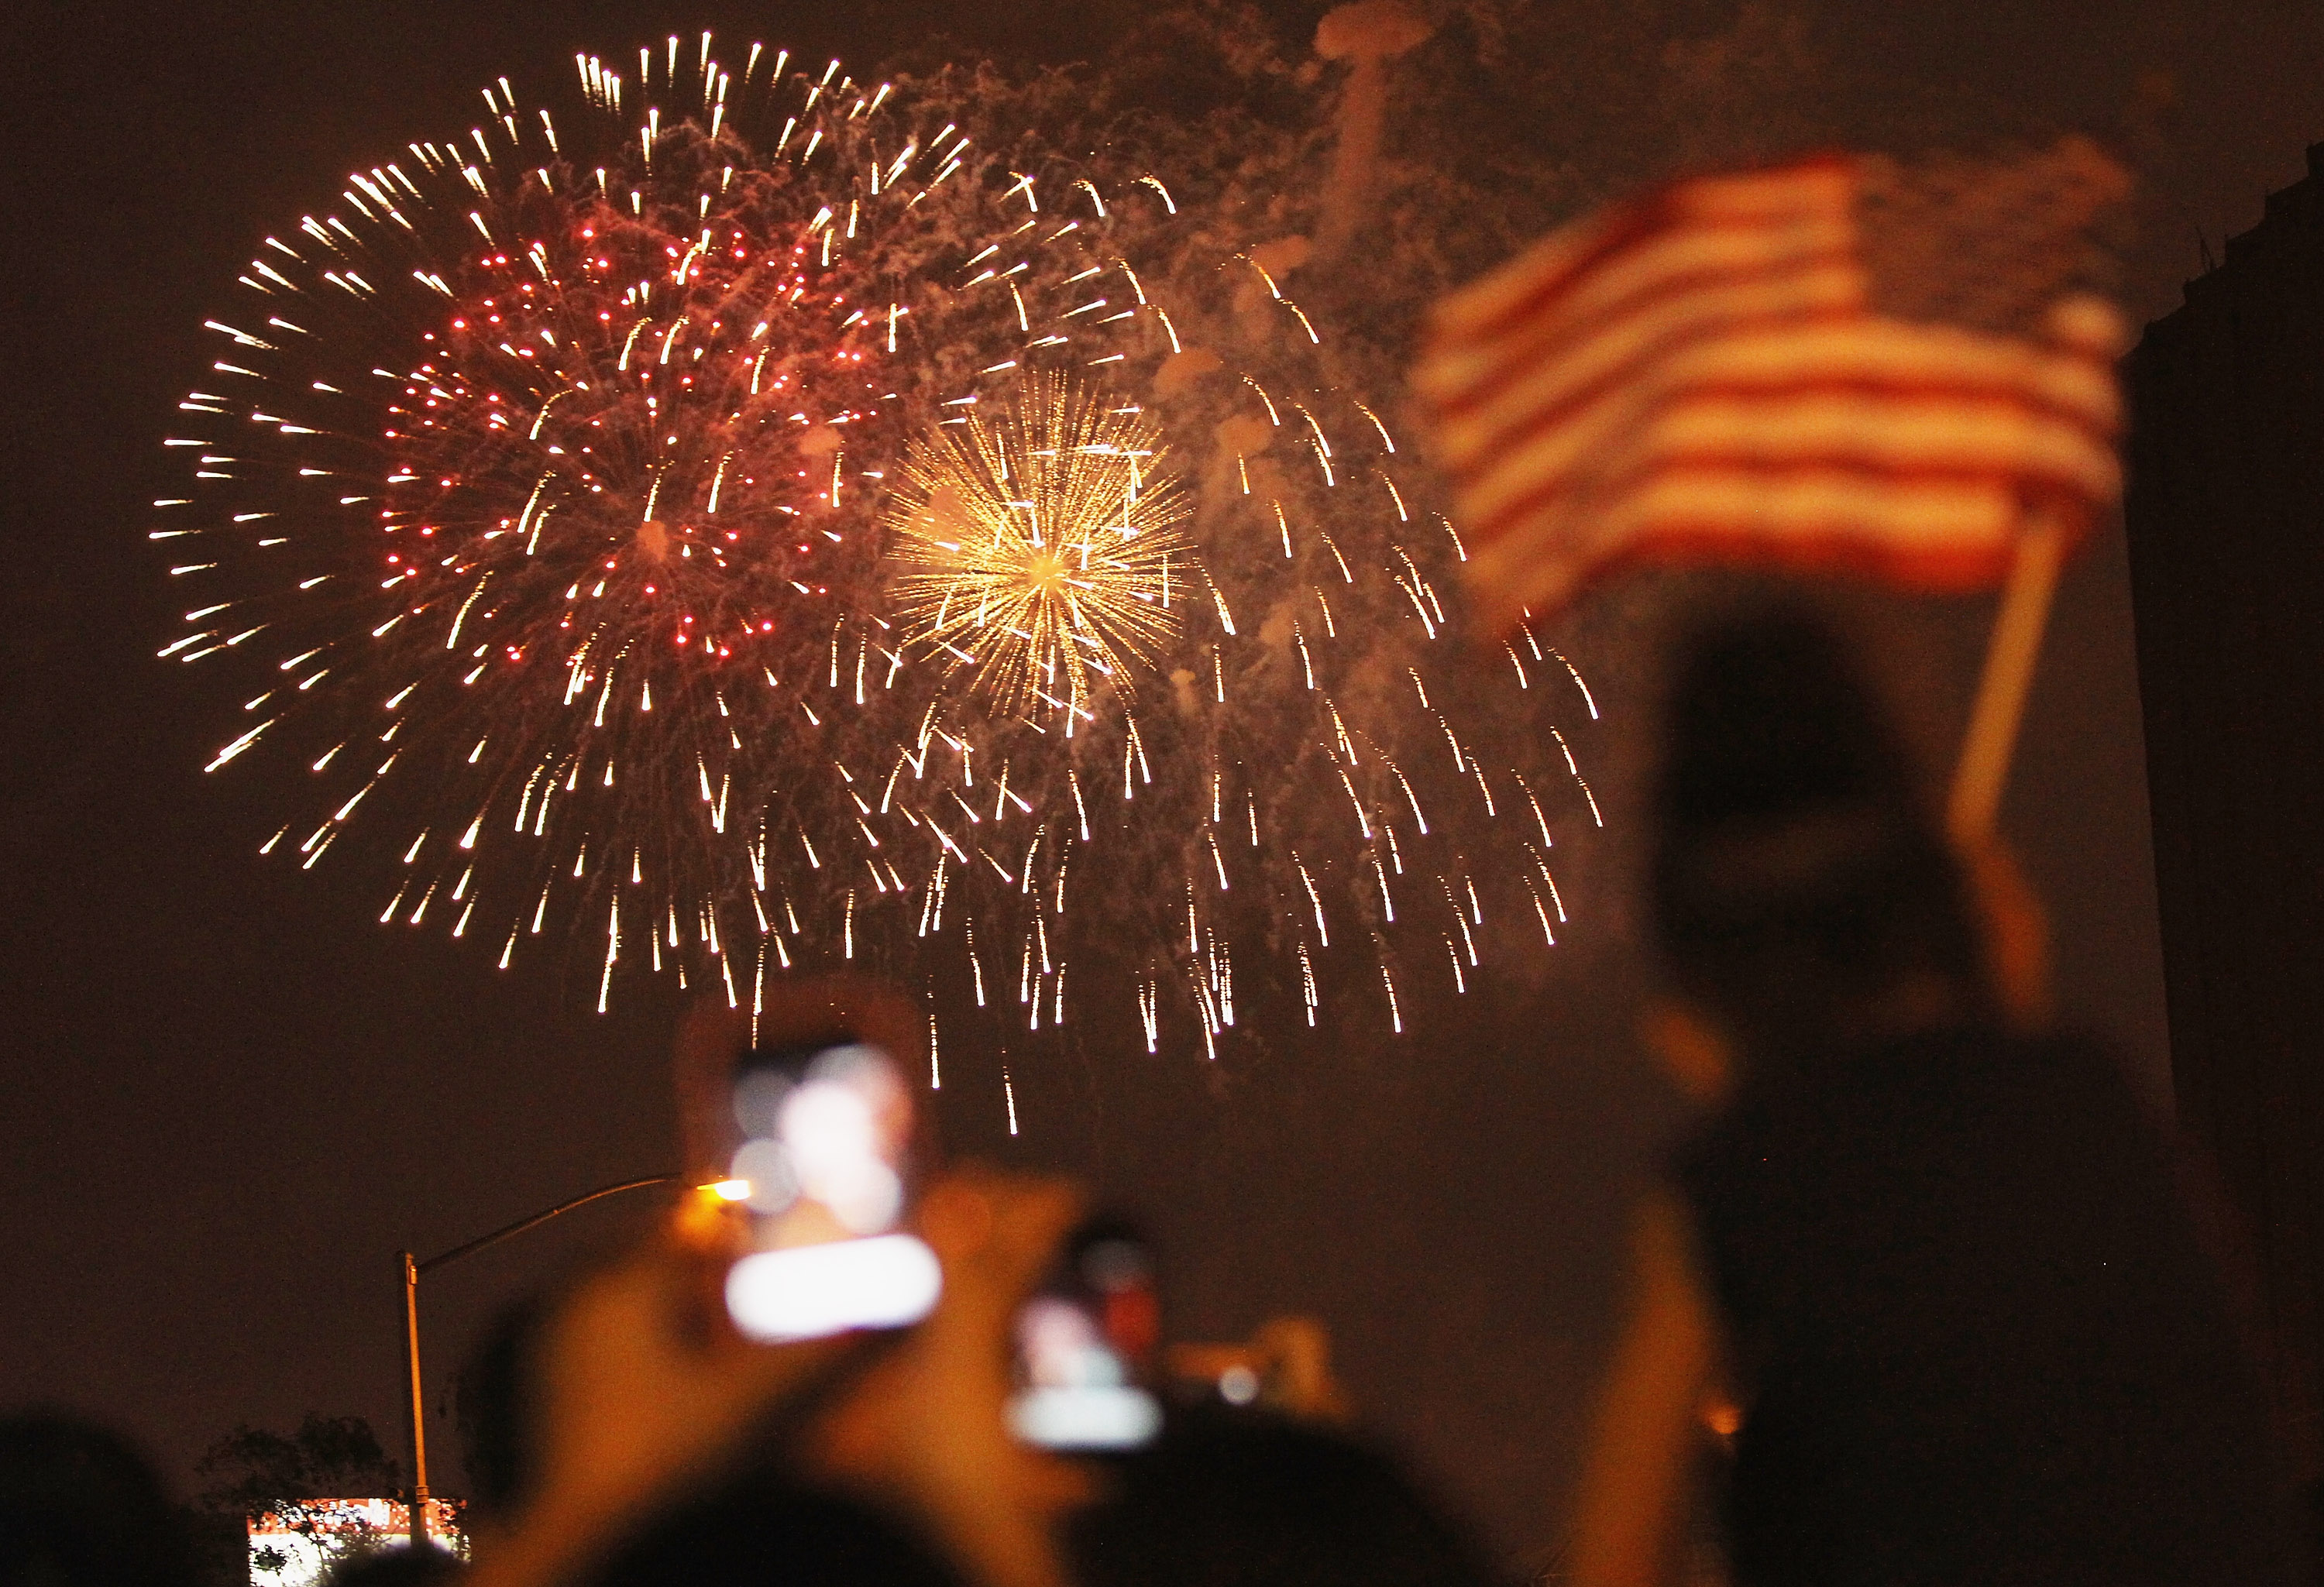 For a blow-by-blow taxonomy of fireworks injuries, we turn the consumer protection safety commission